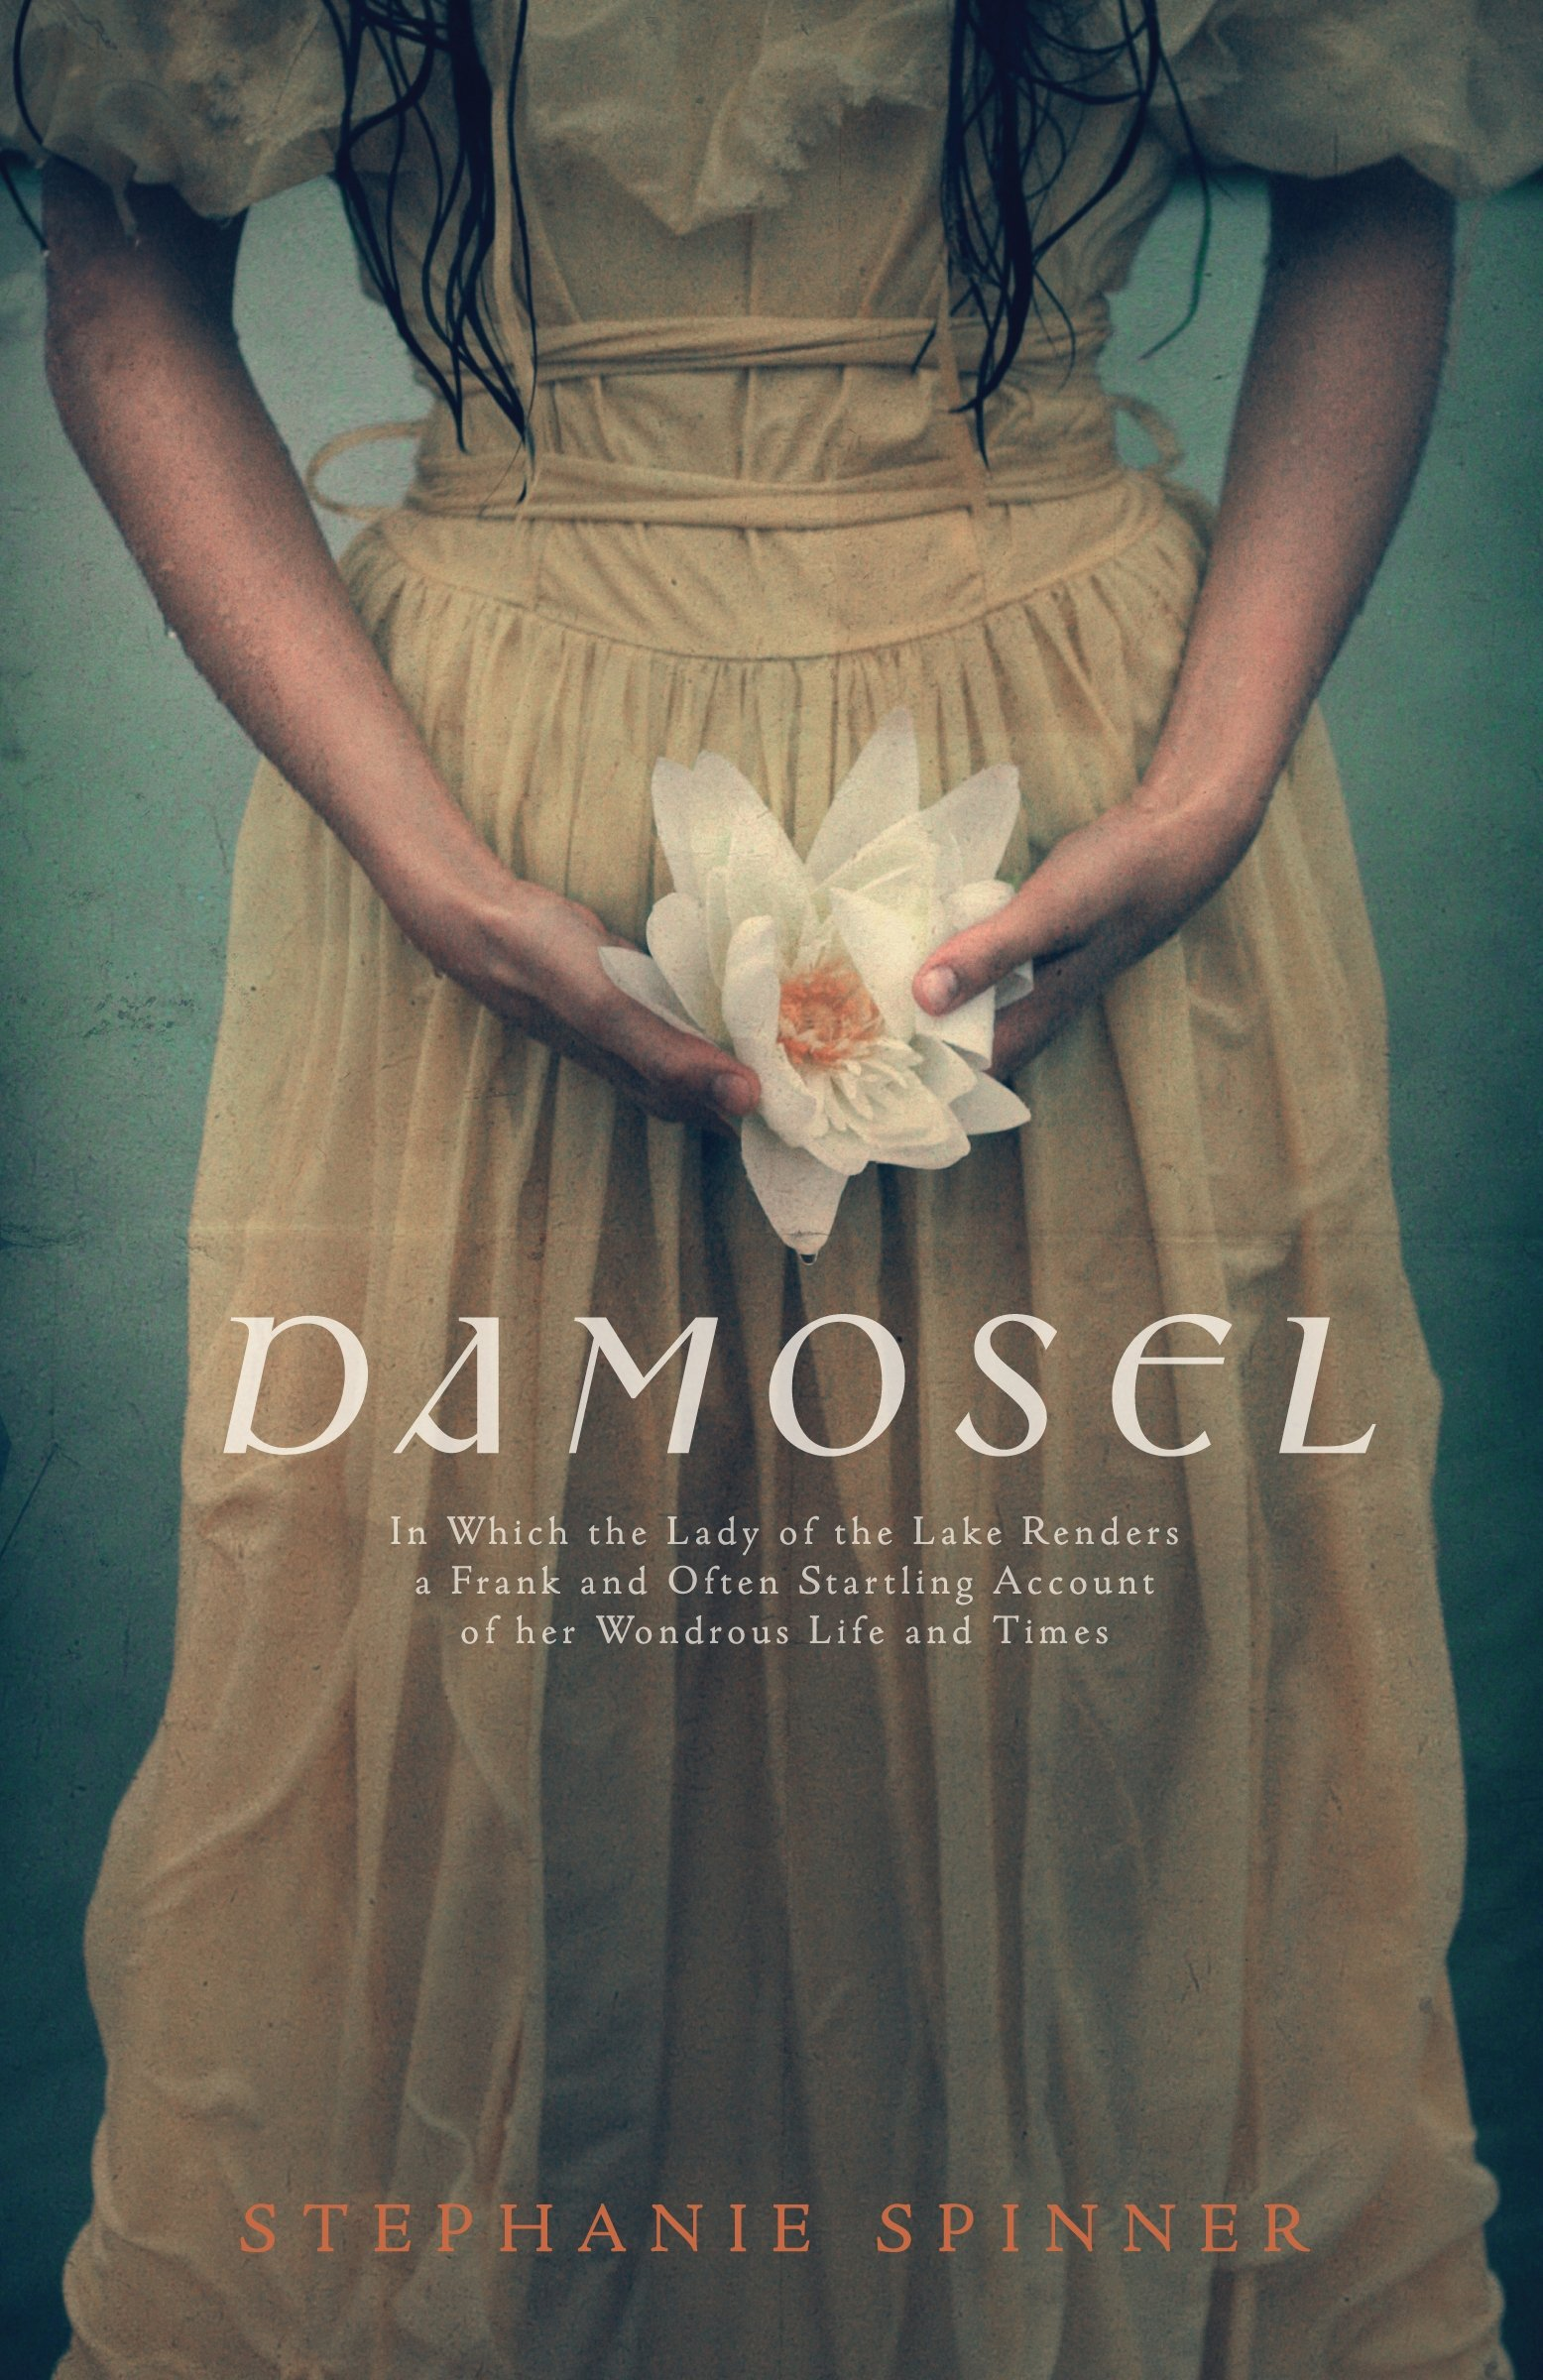 Damosel: In Which the Lady of the Lake Renders a Frank and Often Startling Account of her Wondrous Life and Times